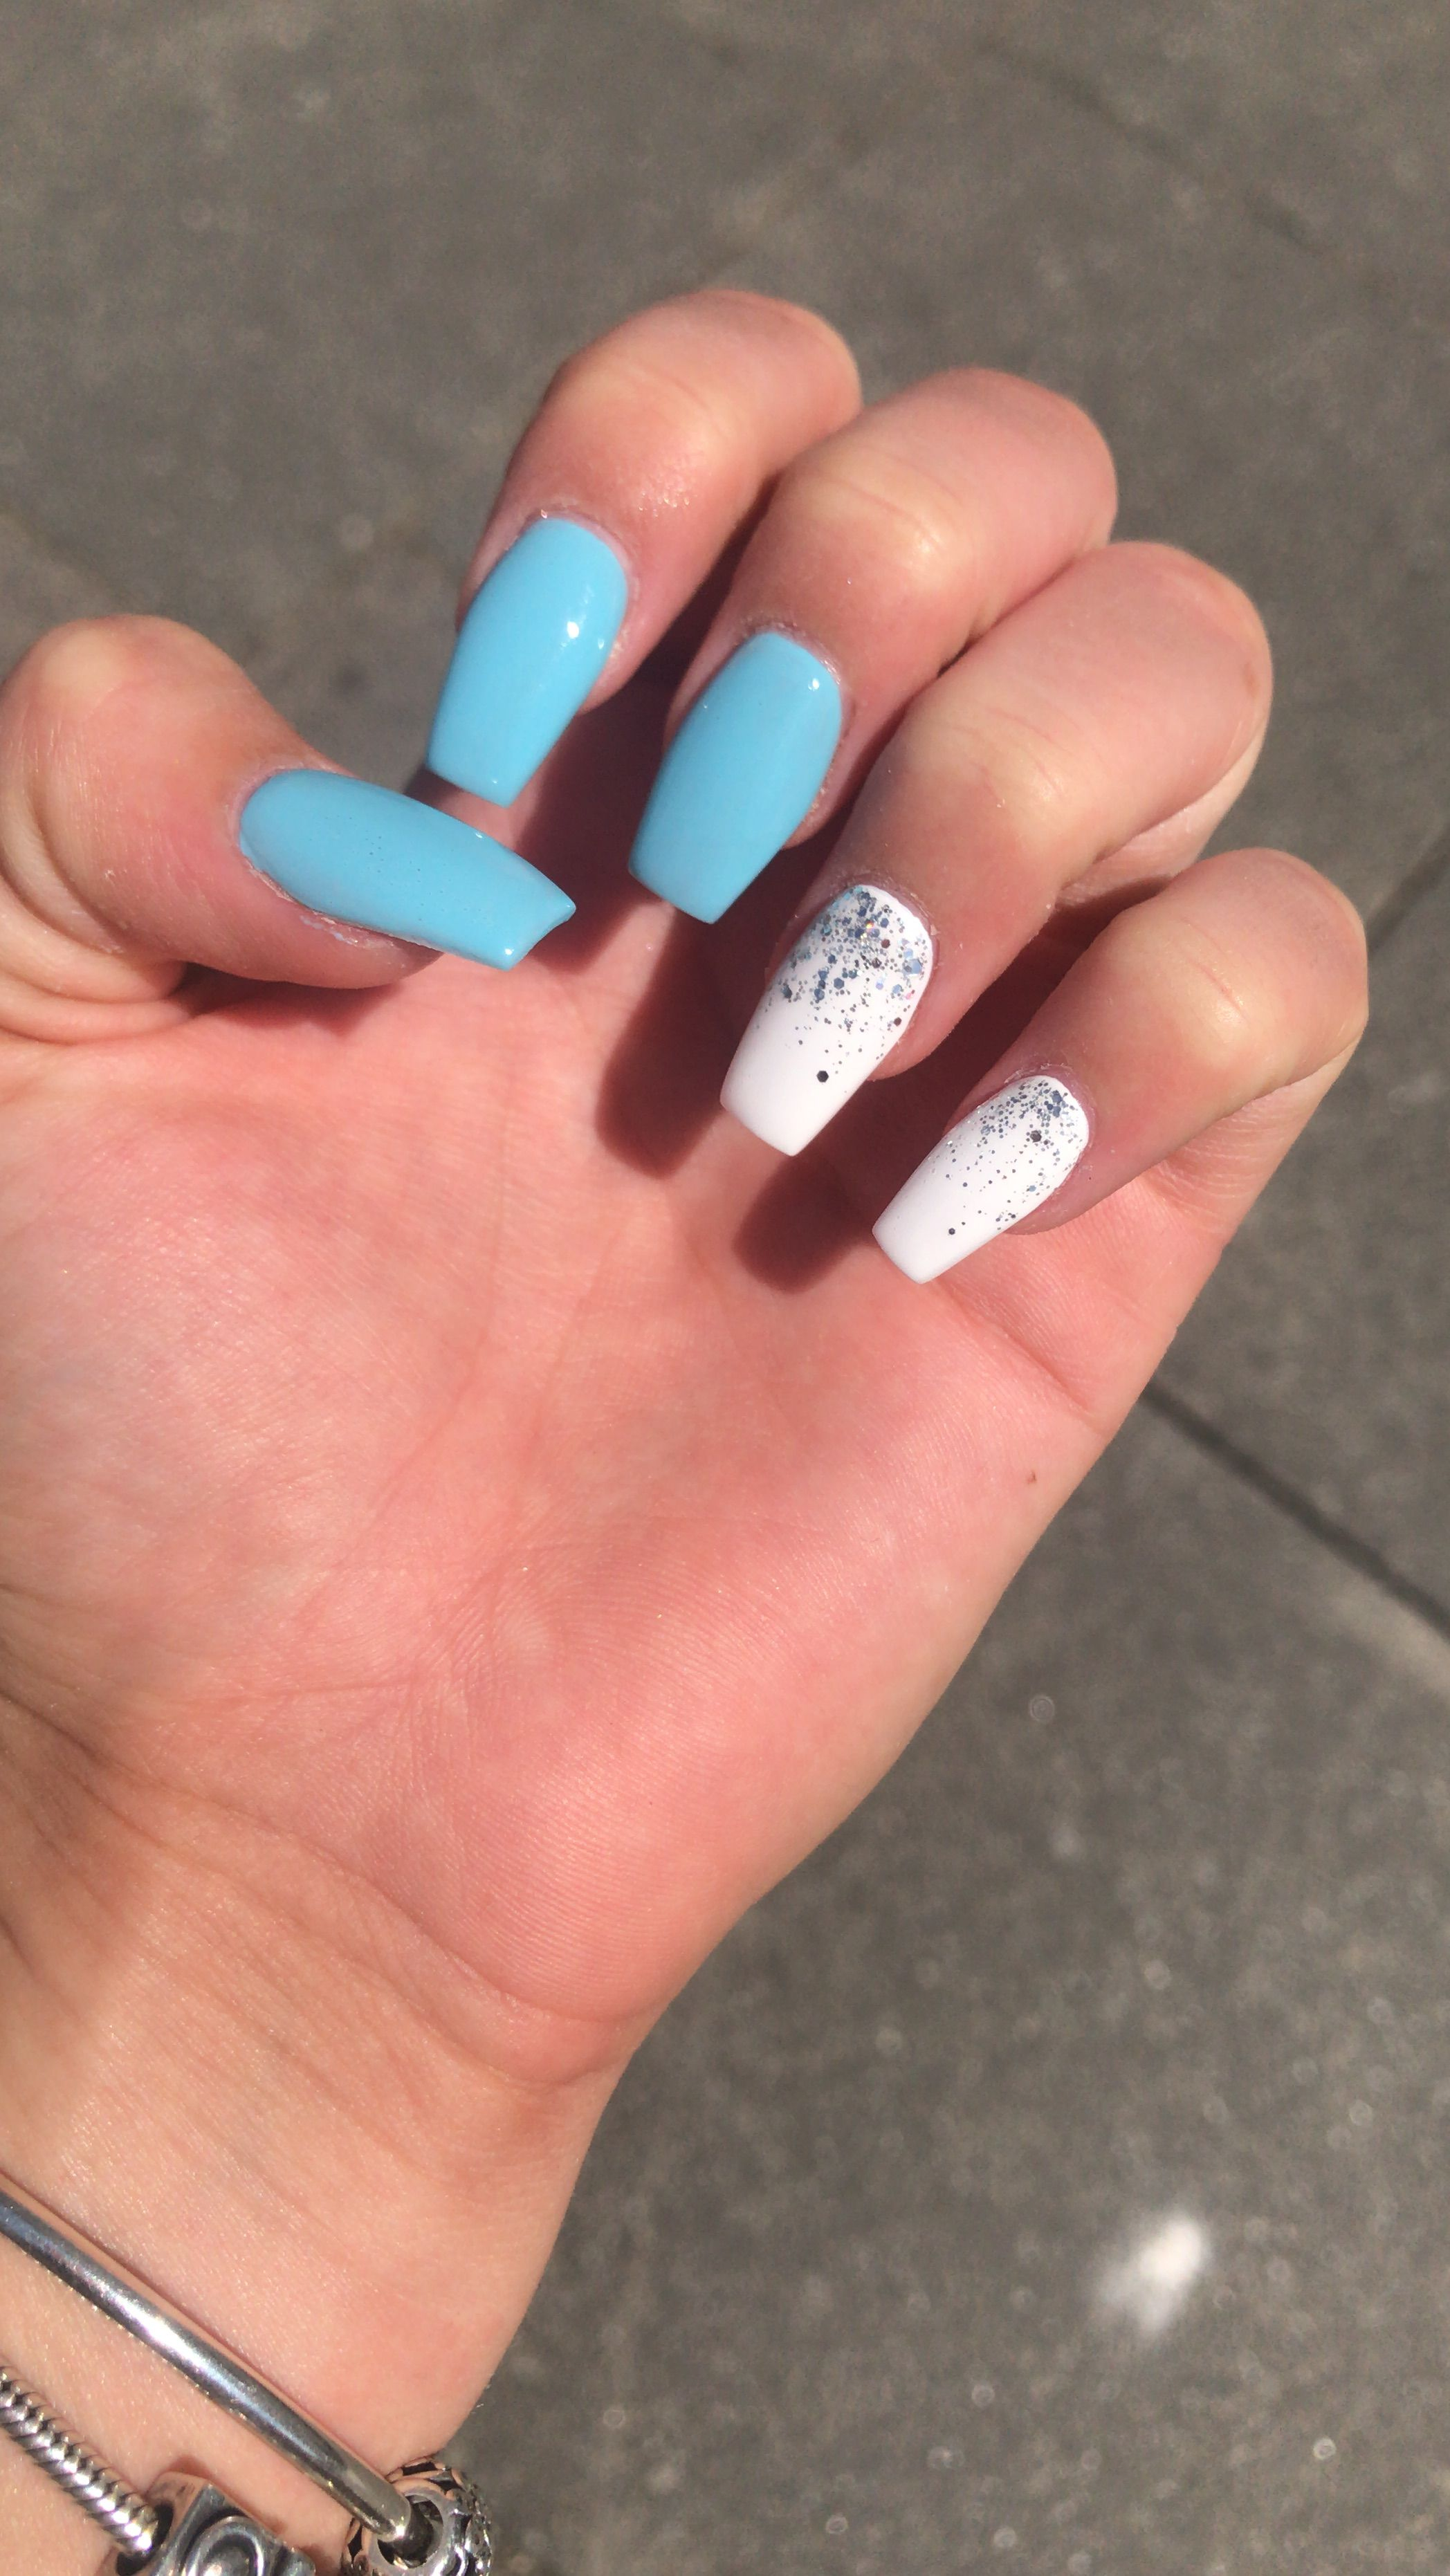 White And Blue Glitter Summer Acrylic Nails Summer Acrylic Nails Nails Blue Glitter